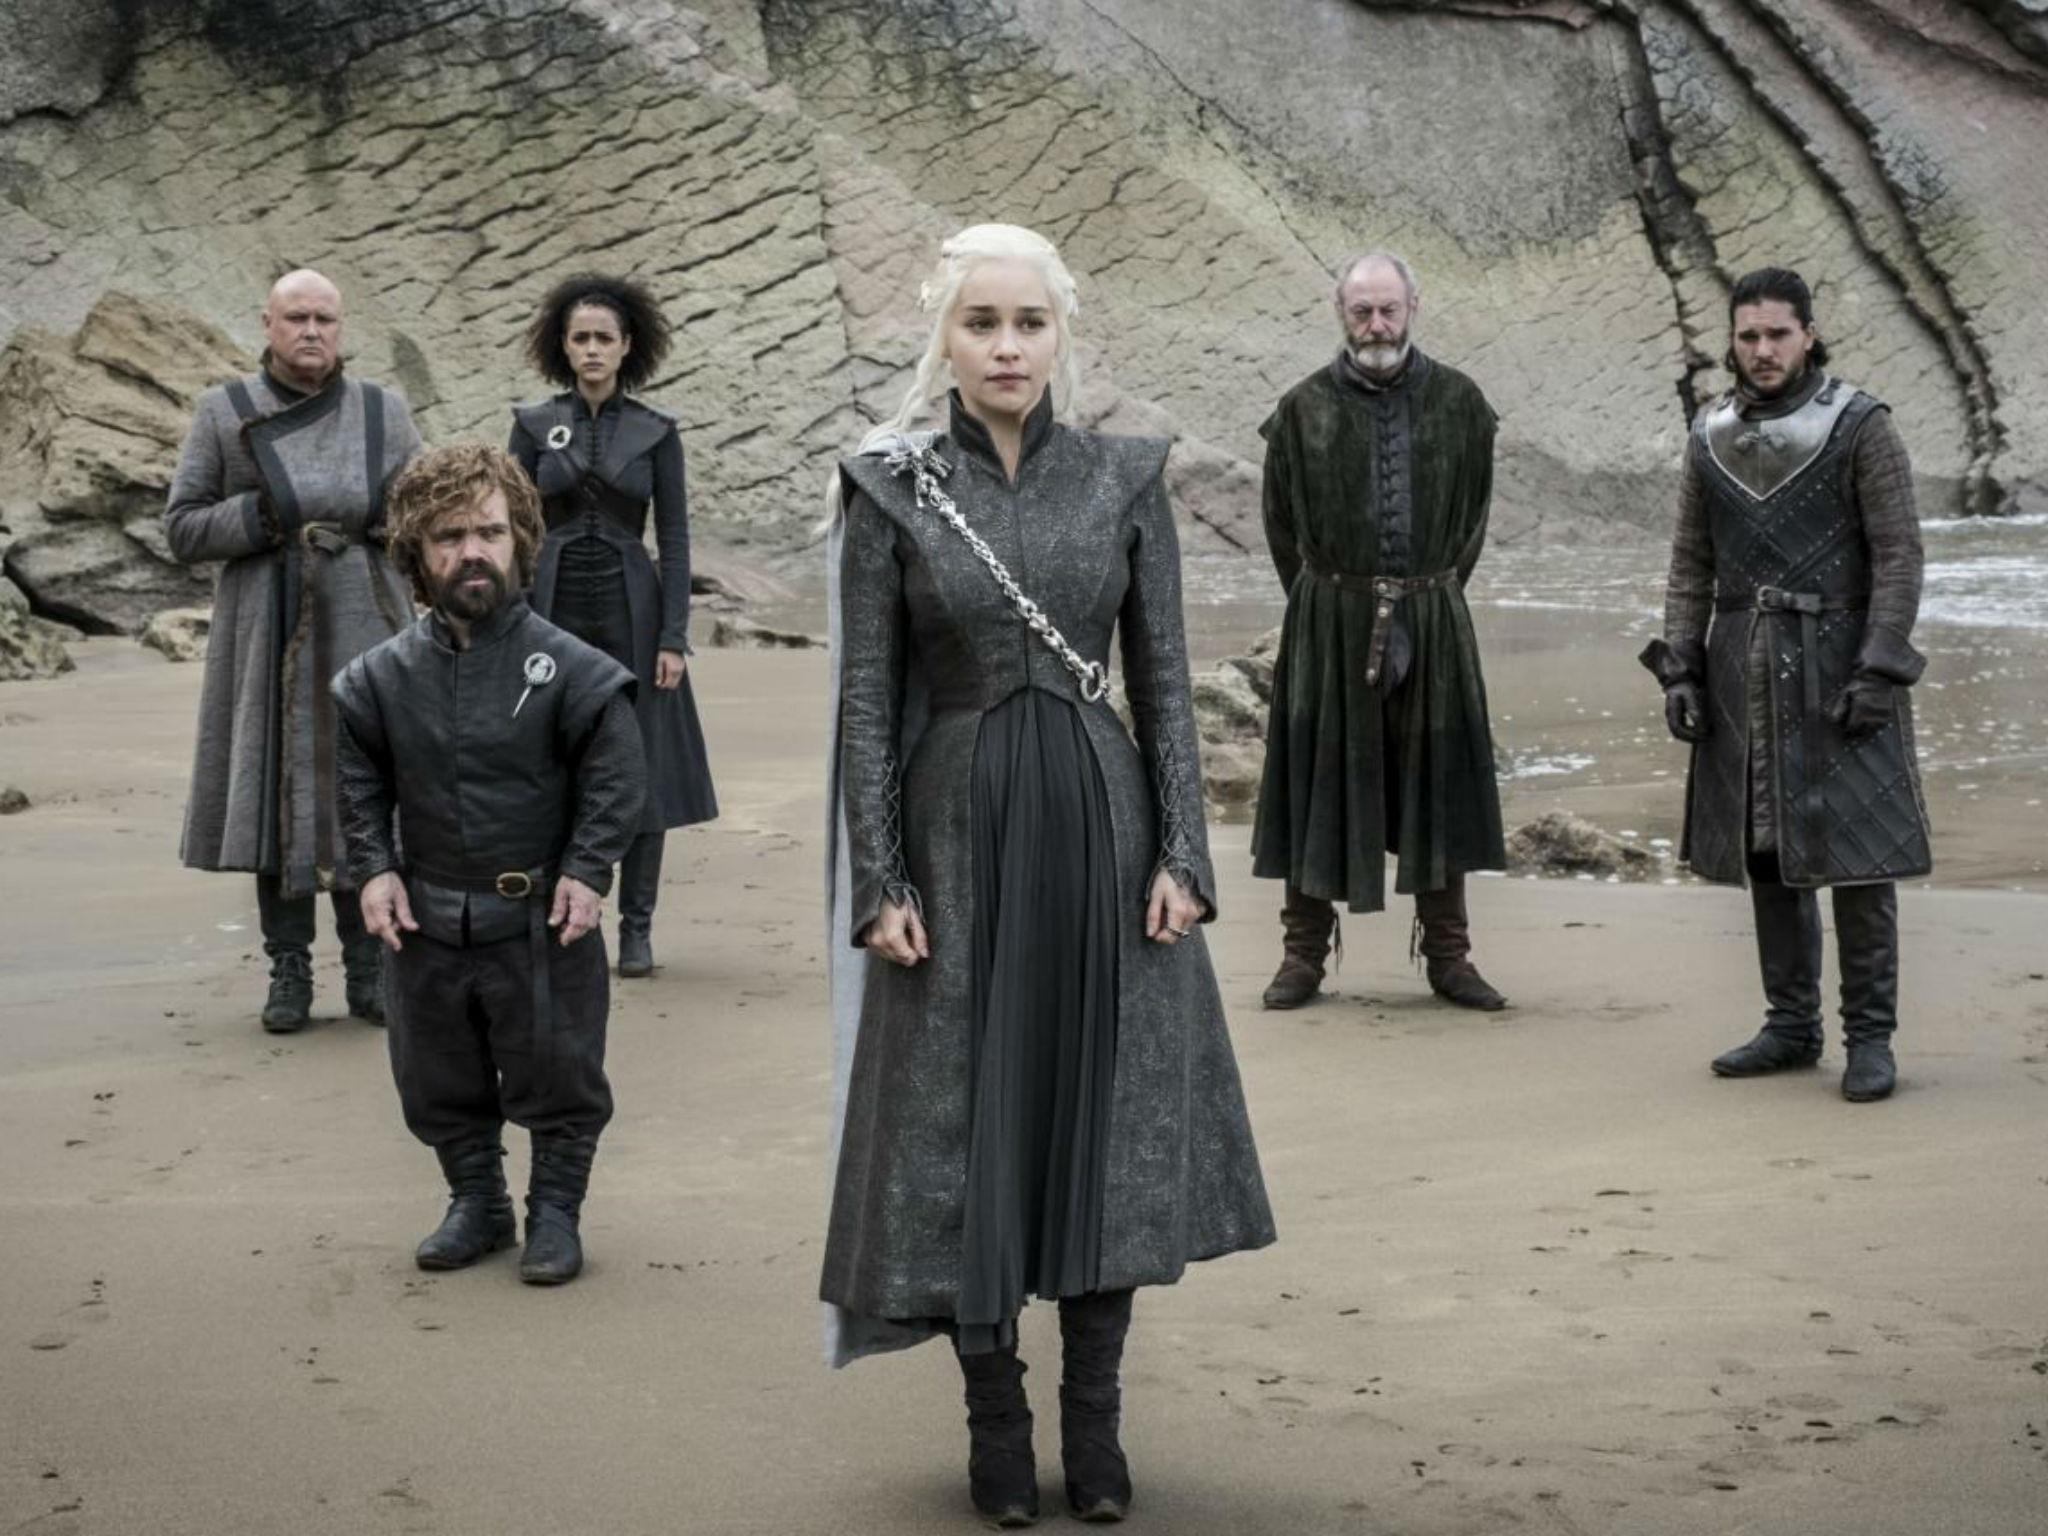 Game of Thrones cast members assemble for what could be season 8 finale showdown